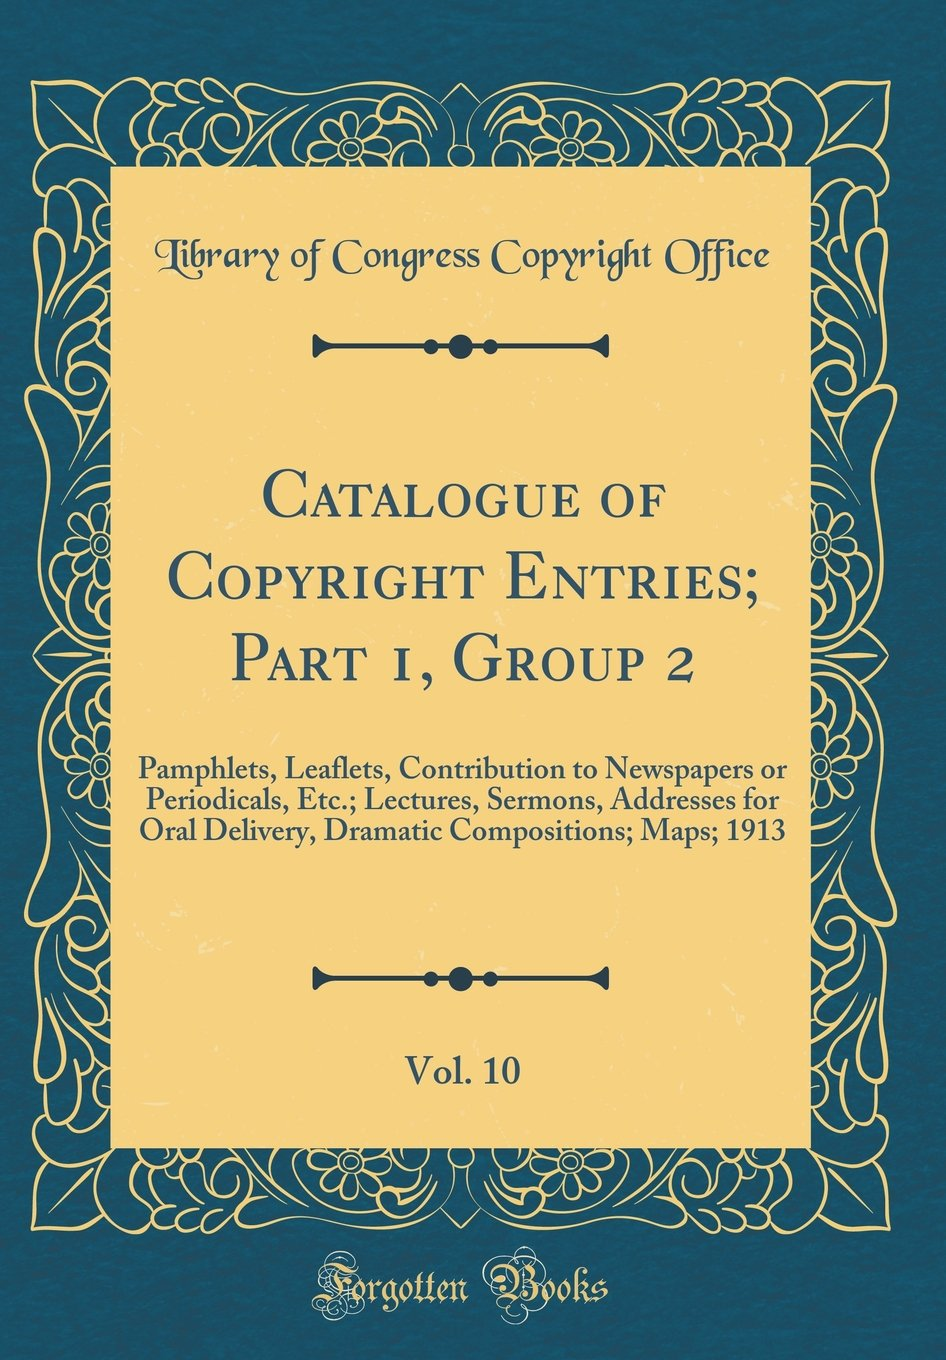 Download Catalogue of Copyright Entries; Part 1, Group 2, Vol. 10: Pamphlets, Leaflets, Contribution to Newspapers or Periodicals, Etc.; Lectures, Sermons, ... Compositions; Maps; 1913 (Classic Reprint) pdf